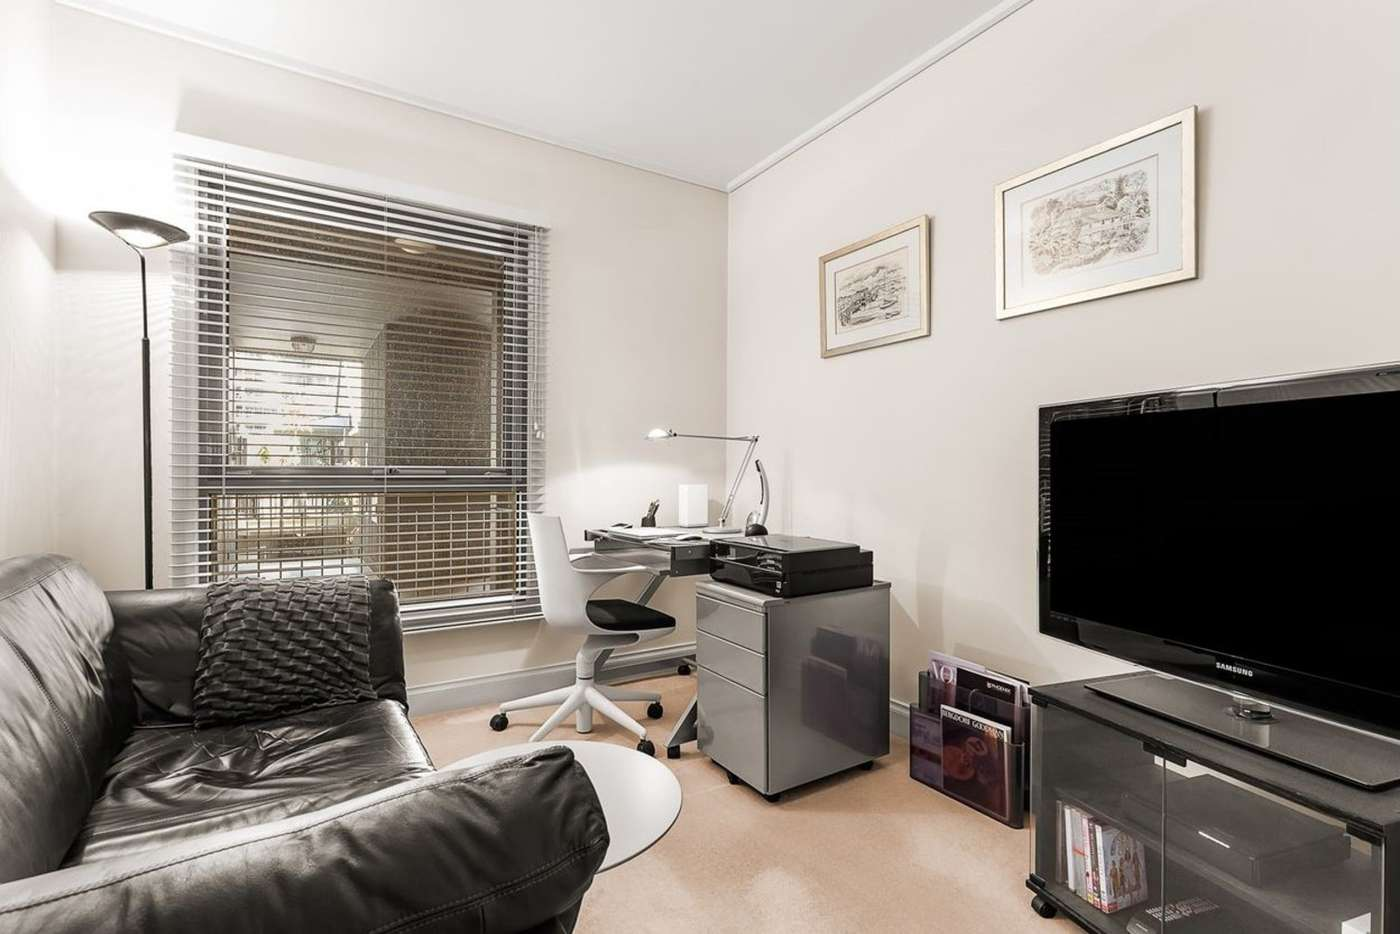 Sixth view of Homely apartment listing, 303/657 Chapel Street, South Yarra VIC 3141